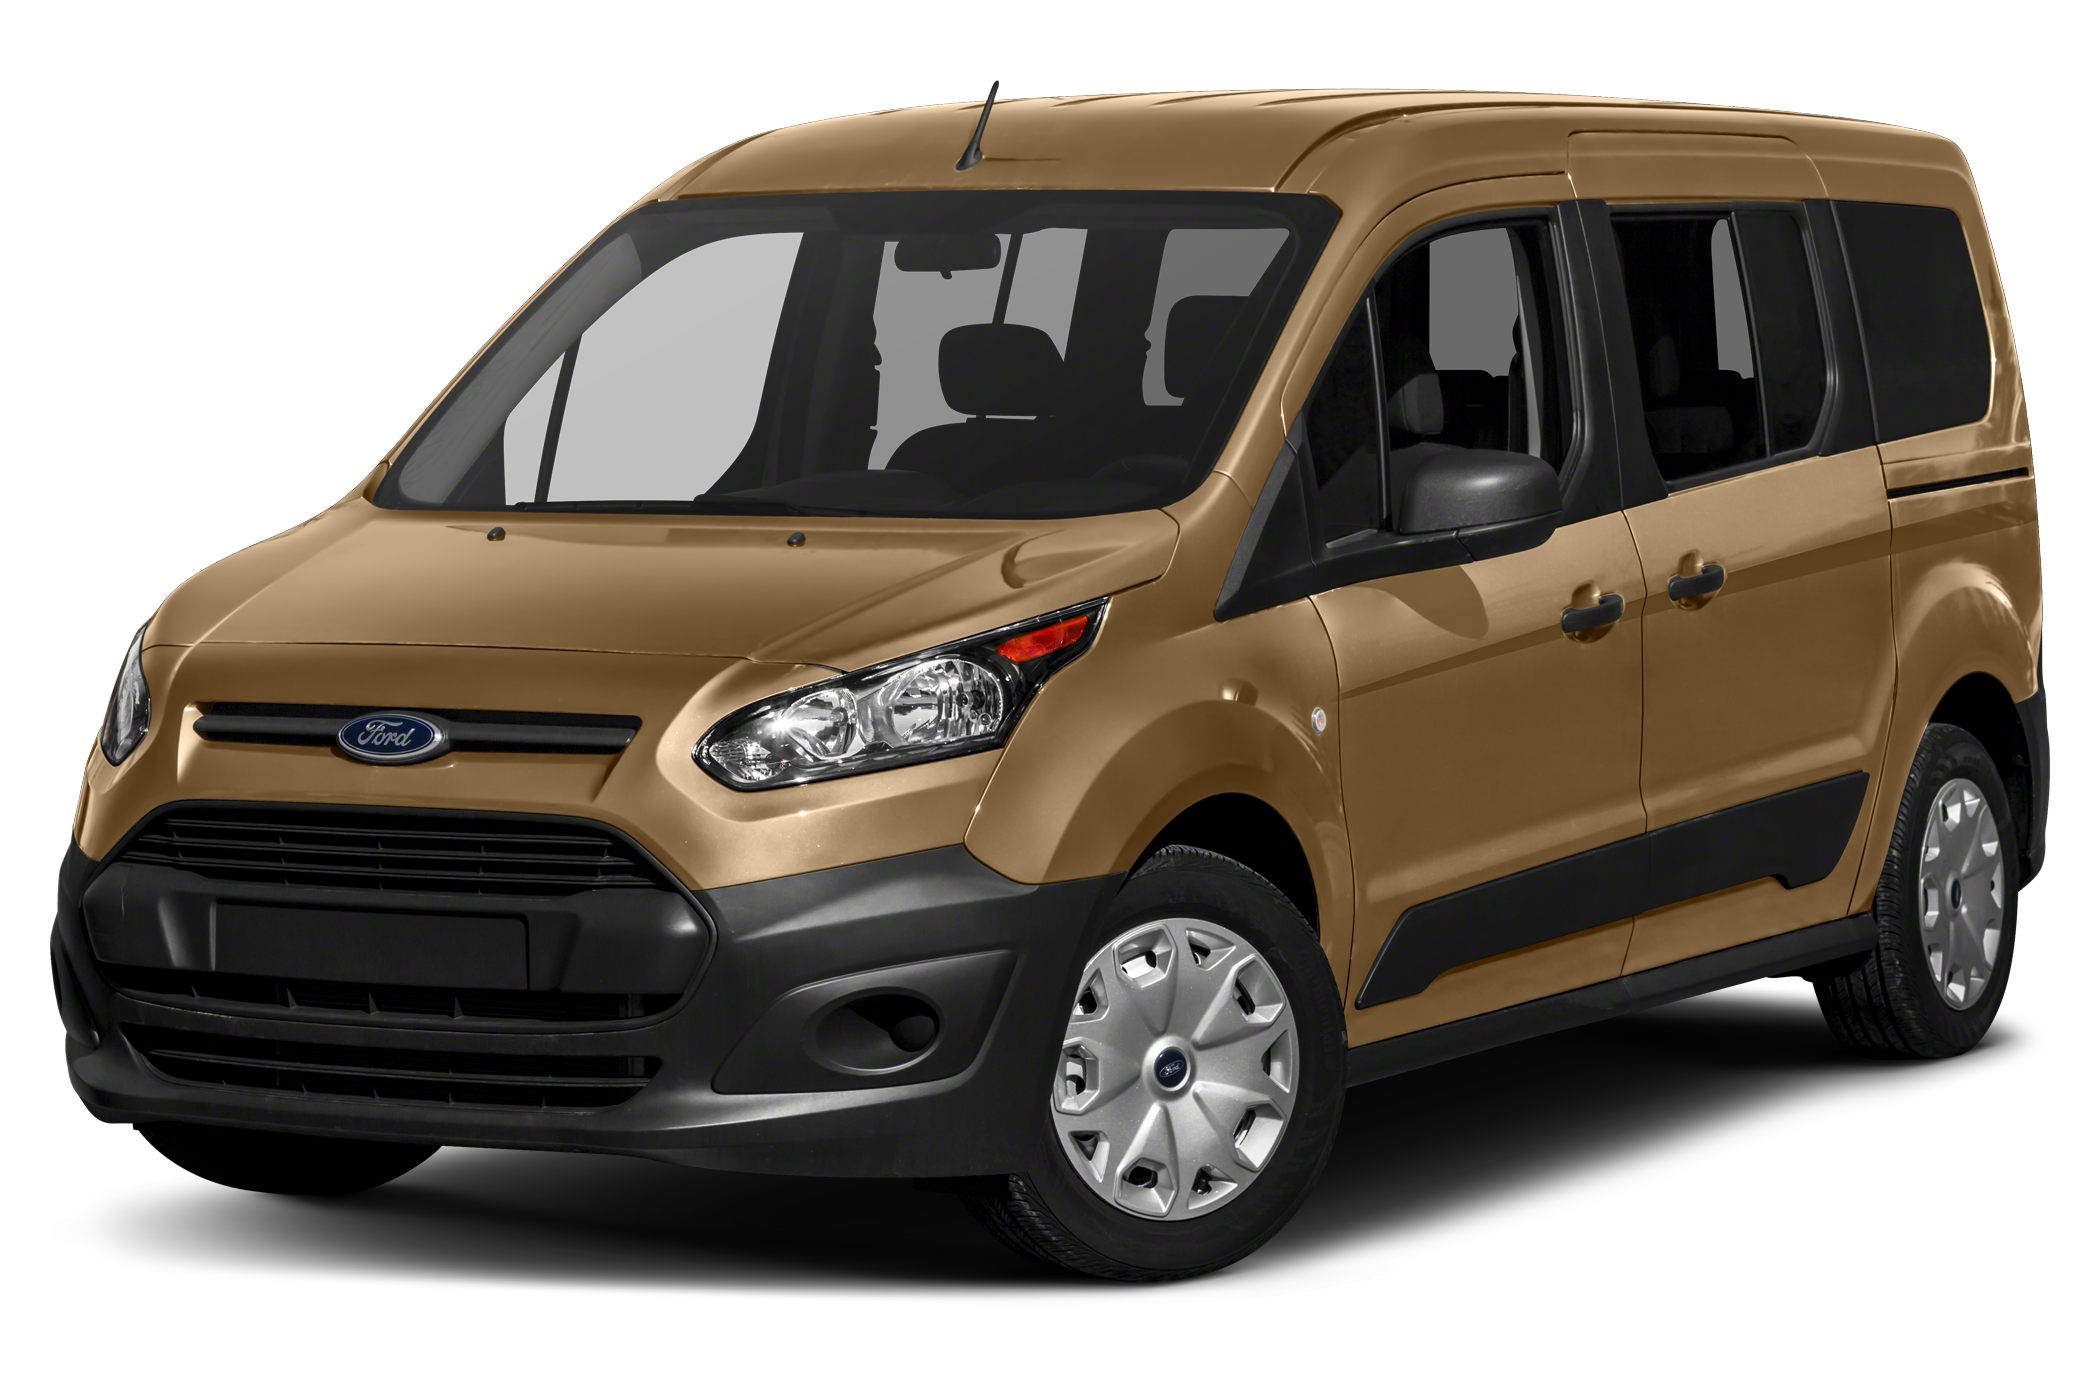 2014 Ford Transit Connect XLT Cargo Van for sale in Smyrna for $25,815 with 5 miles